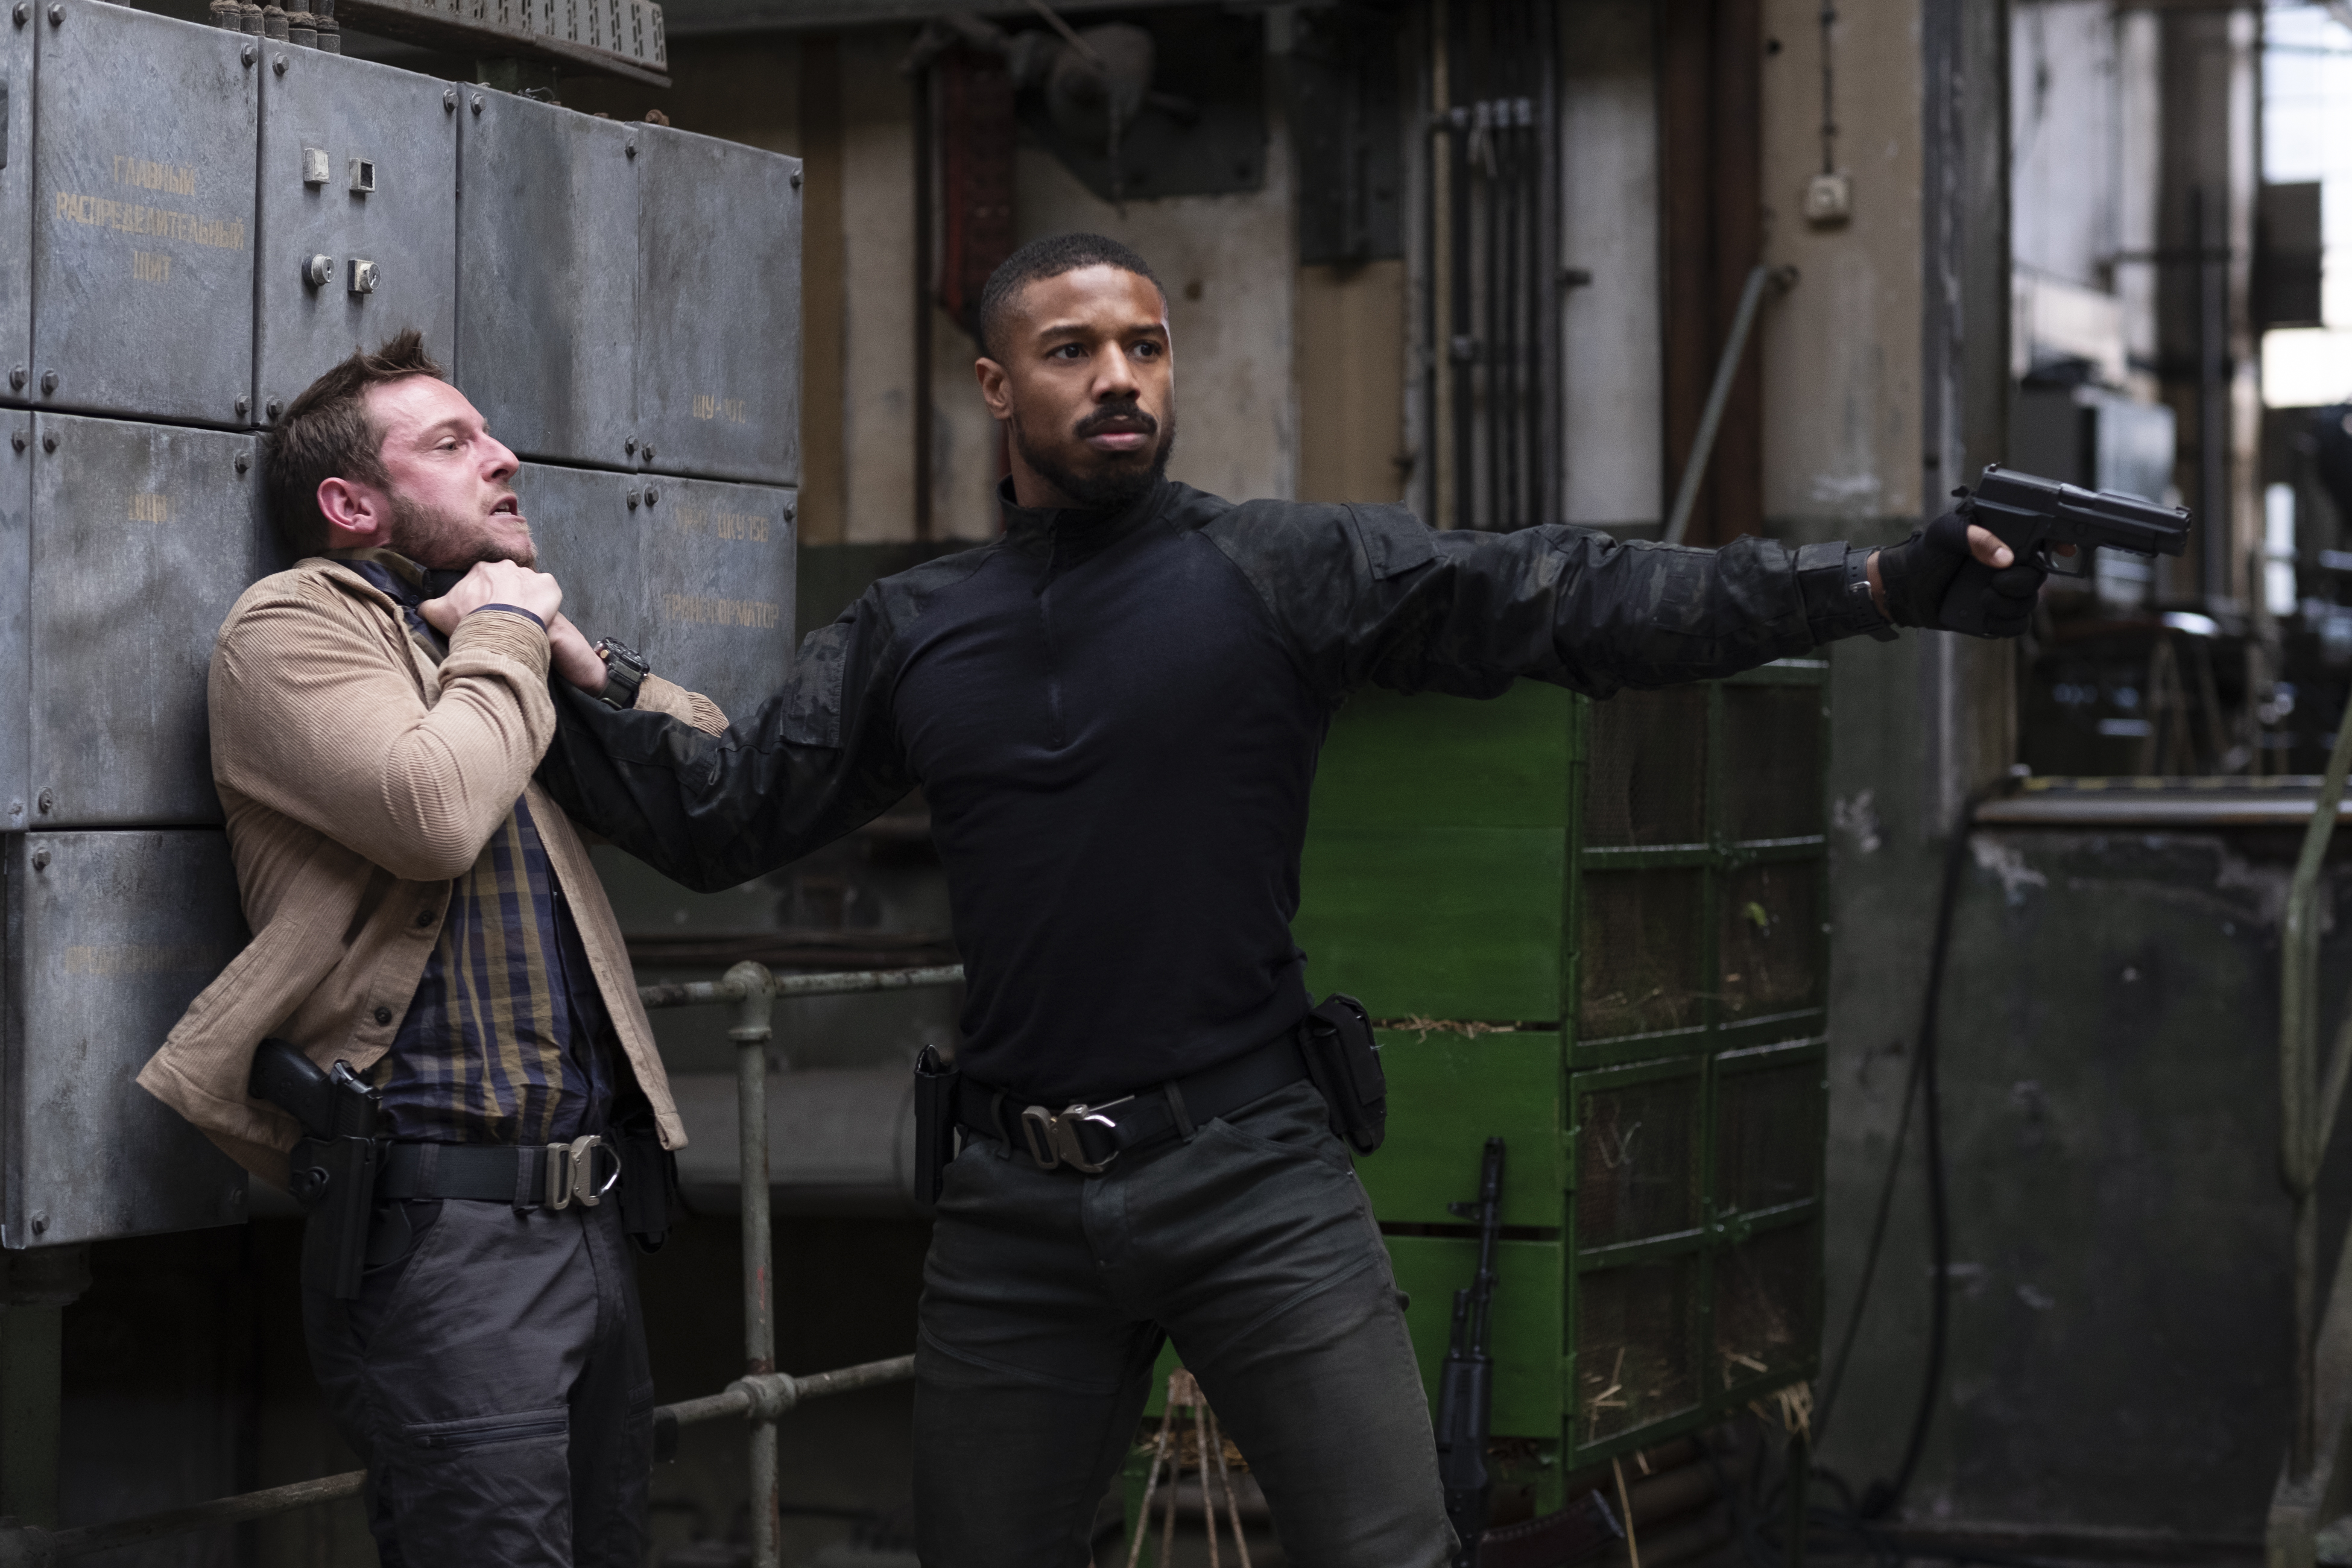 Michael B. Jordan as Navy SEAL John Clark pins a man to a wall by the throat with one hand and points a handgun with the other in Without Remorse